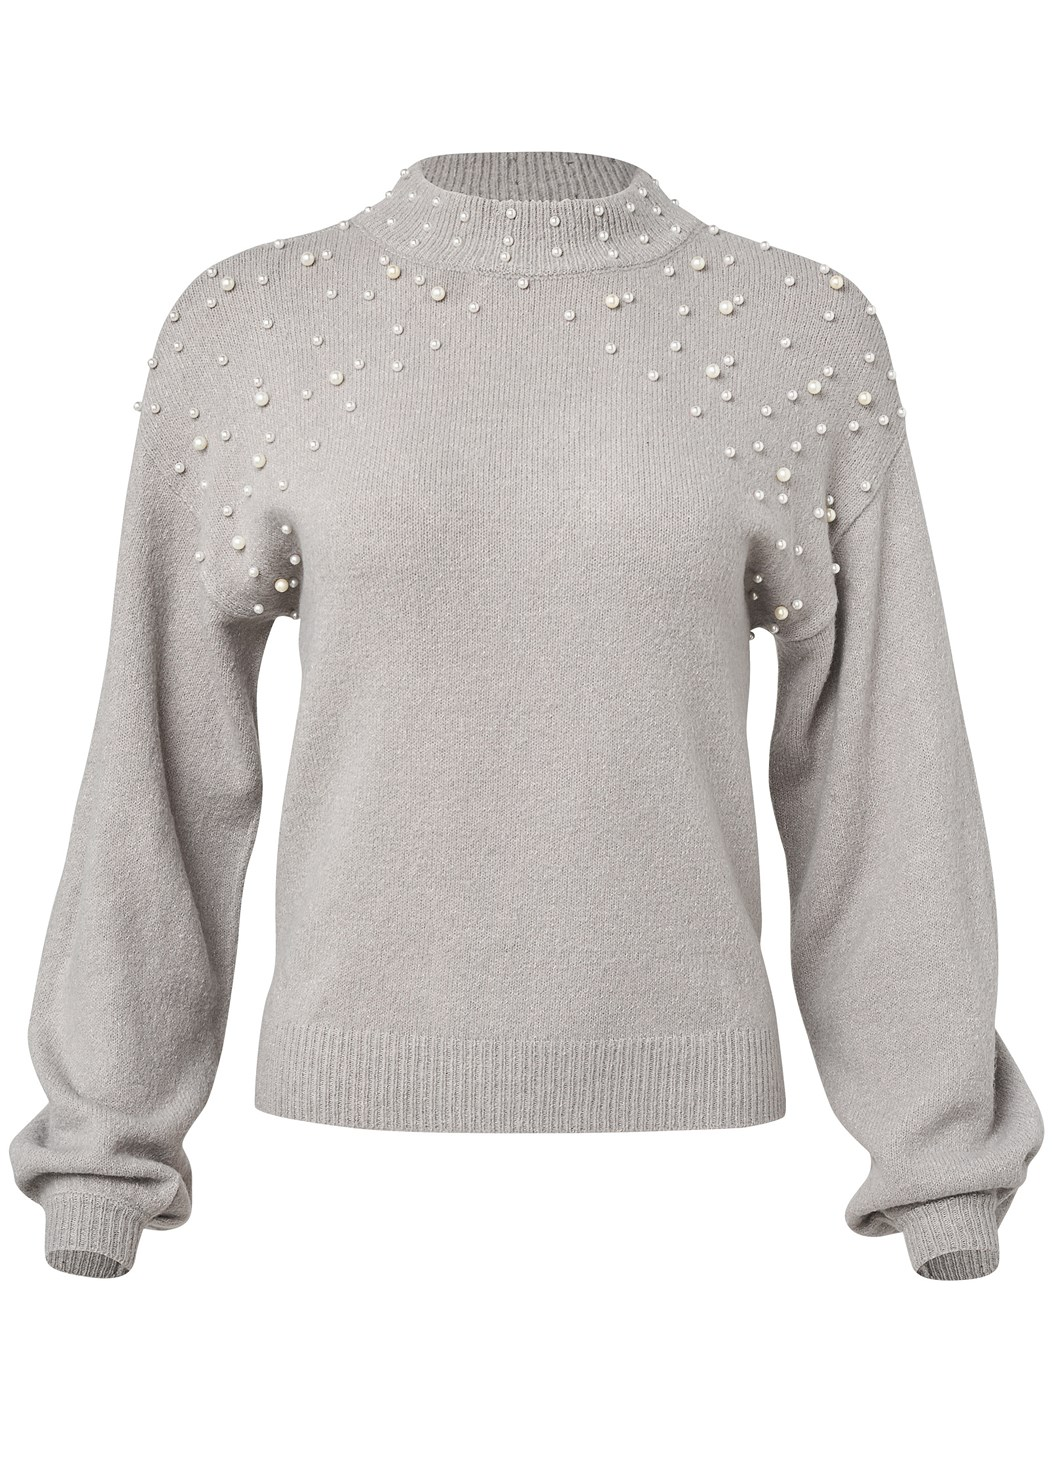 Pearl Detail Sweater,Mid Rise Color Skinny Jeans,Lace Up Tall Boots